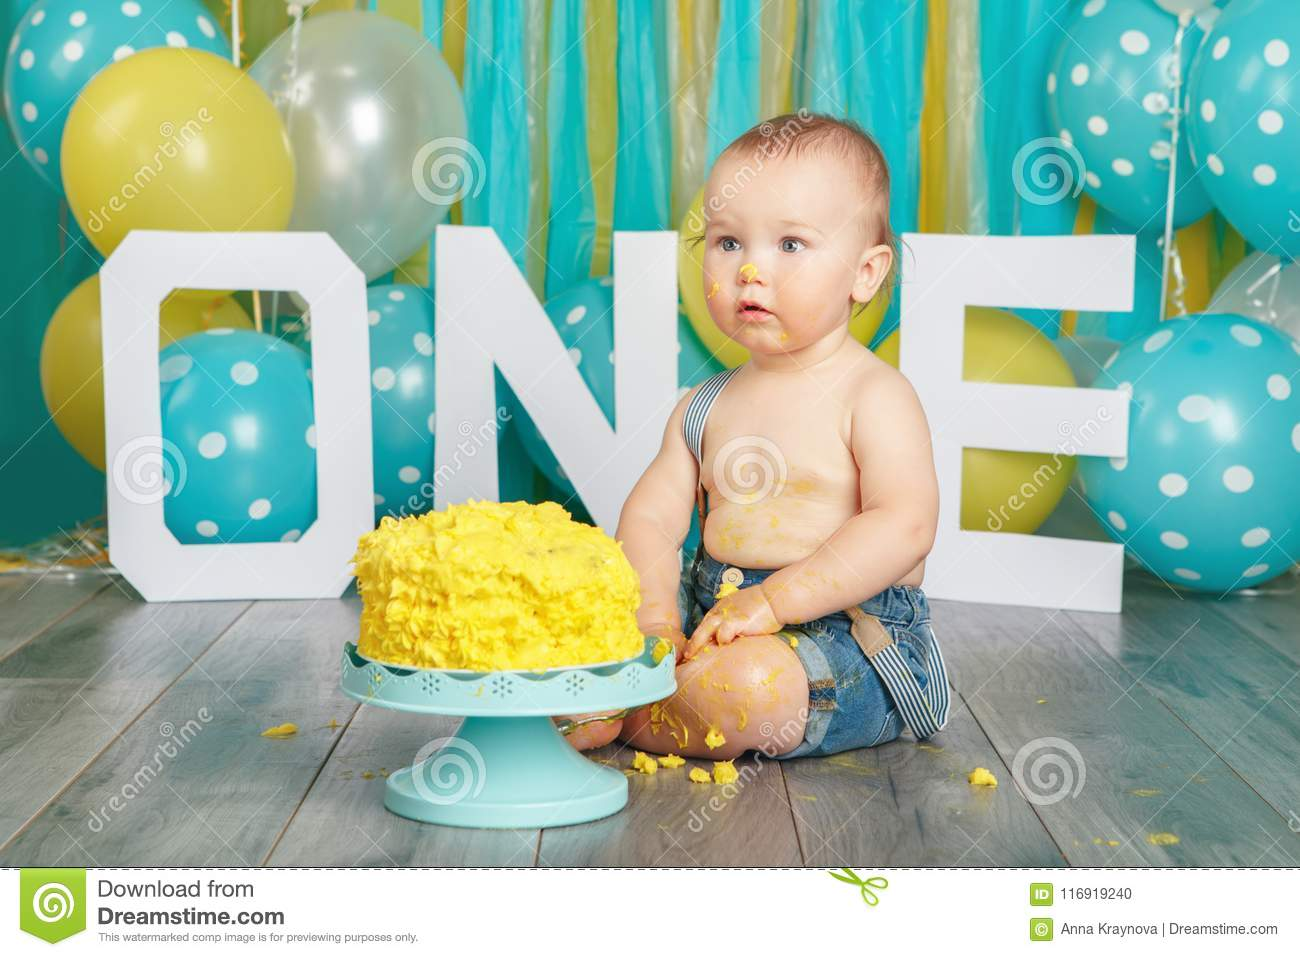 Portrait Of Cute Adorable Caucasian Baby Boy In Jeans Pants Celebrating His First Birthday Cake Smash Concept Child Kid Sitting On Floor Studio Eating